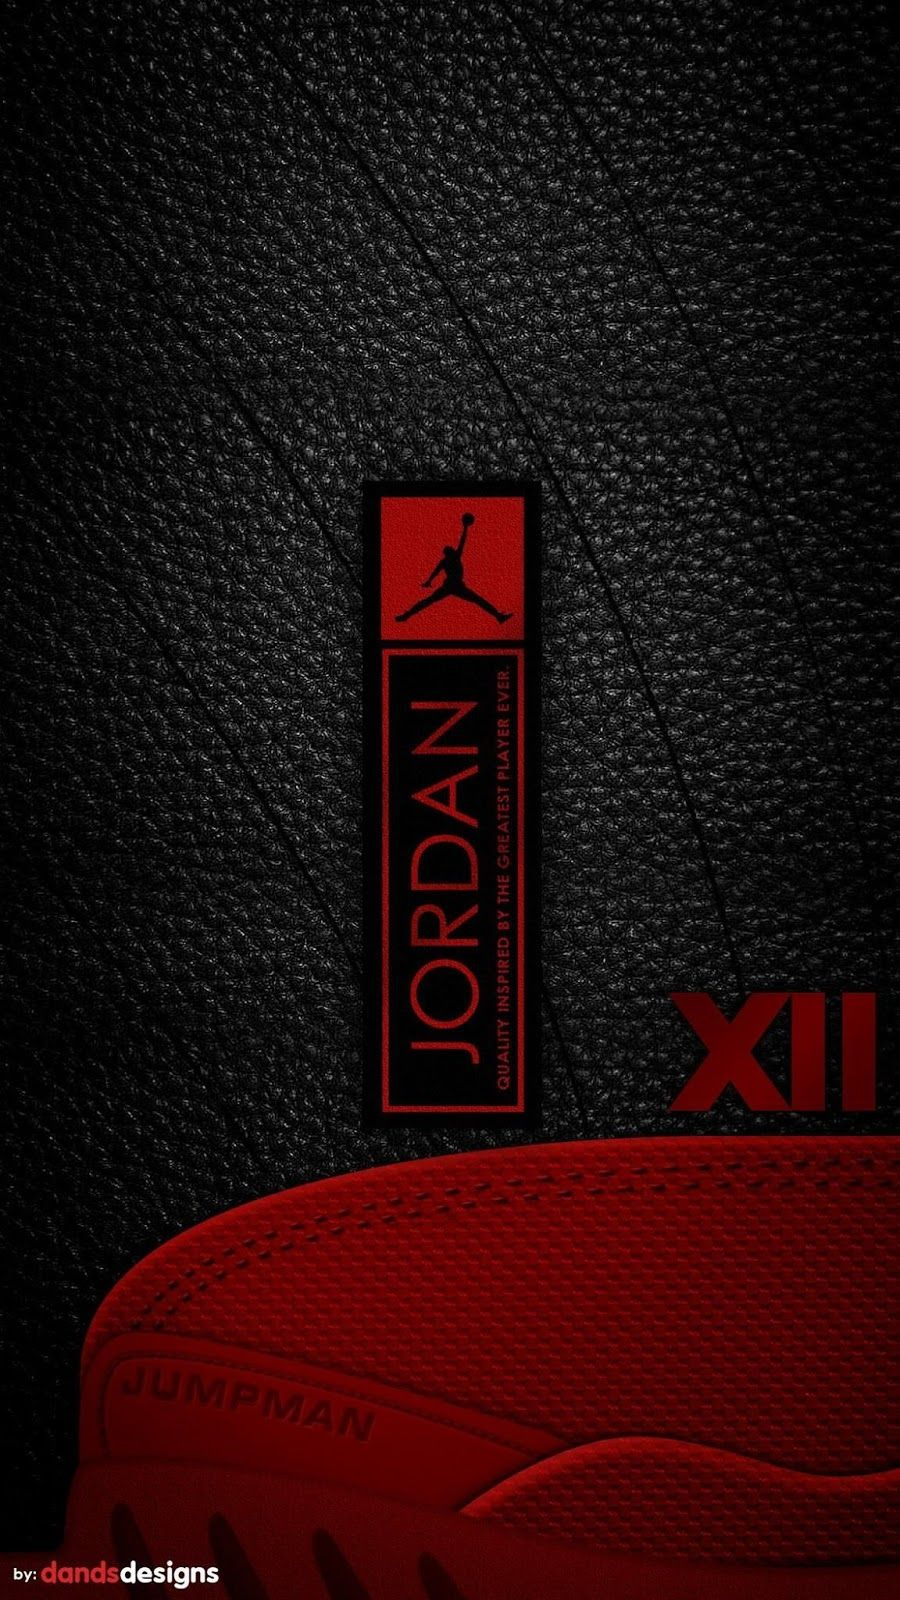 Jordan Iphone Wallpapers Hd In 2020 Jordan Logo Wallpaper Nike Wallpaper Cool Nike Wallpapers